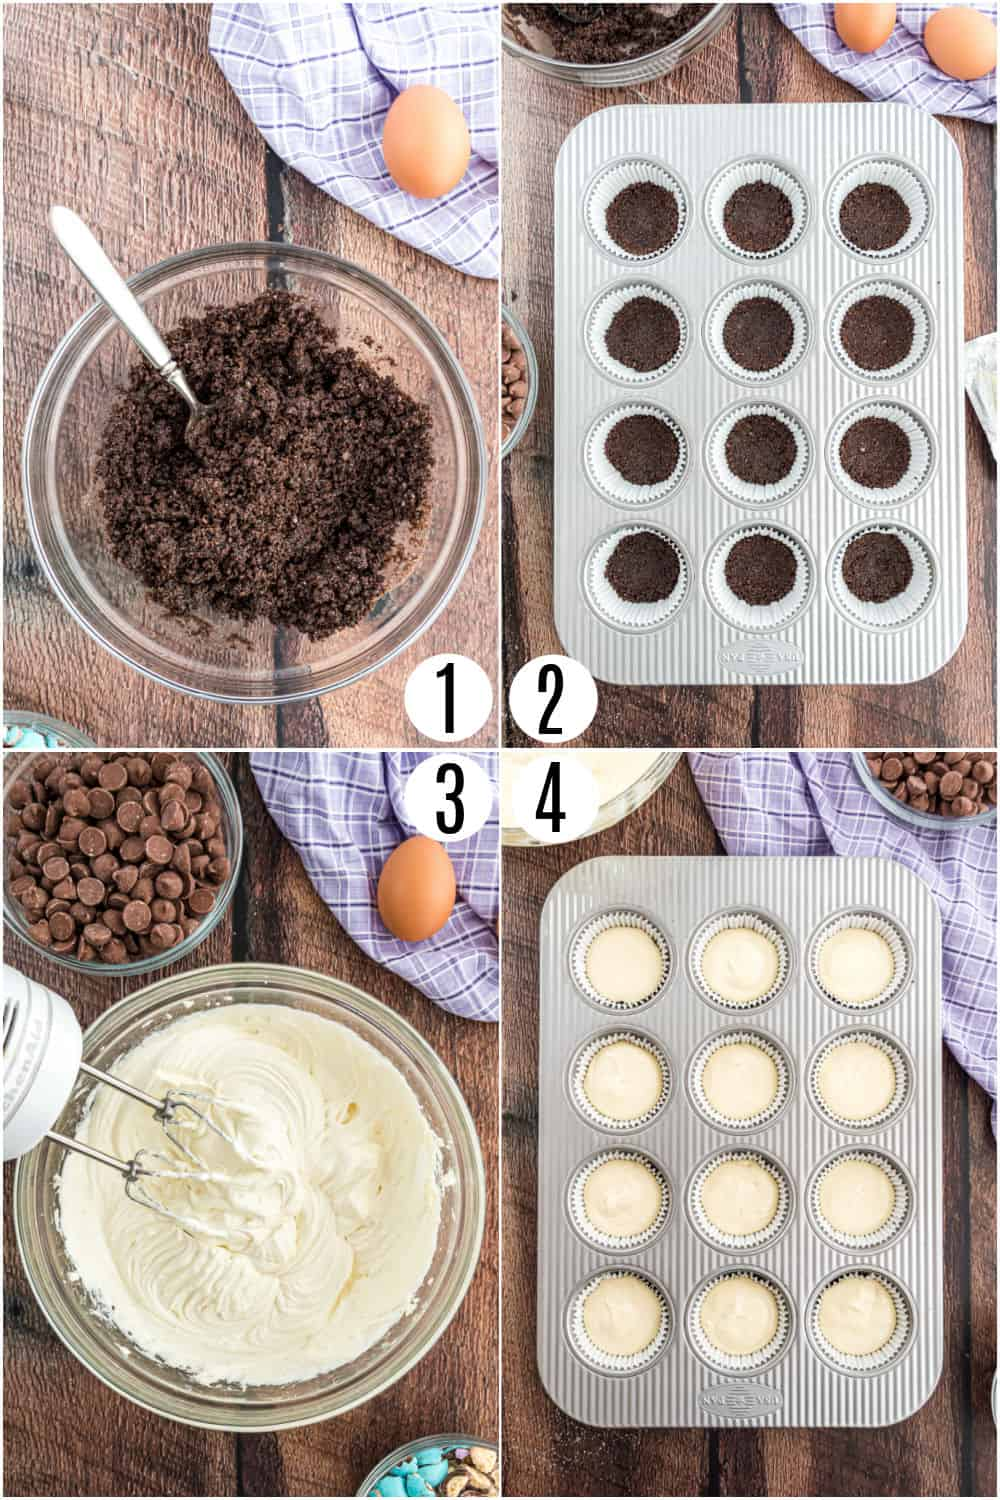 Step by step photos showing how to make mini cheesecakes.